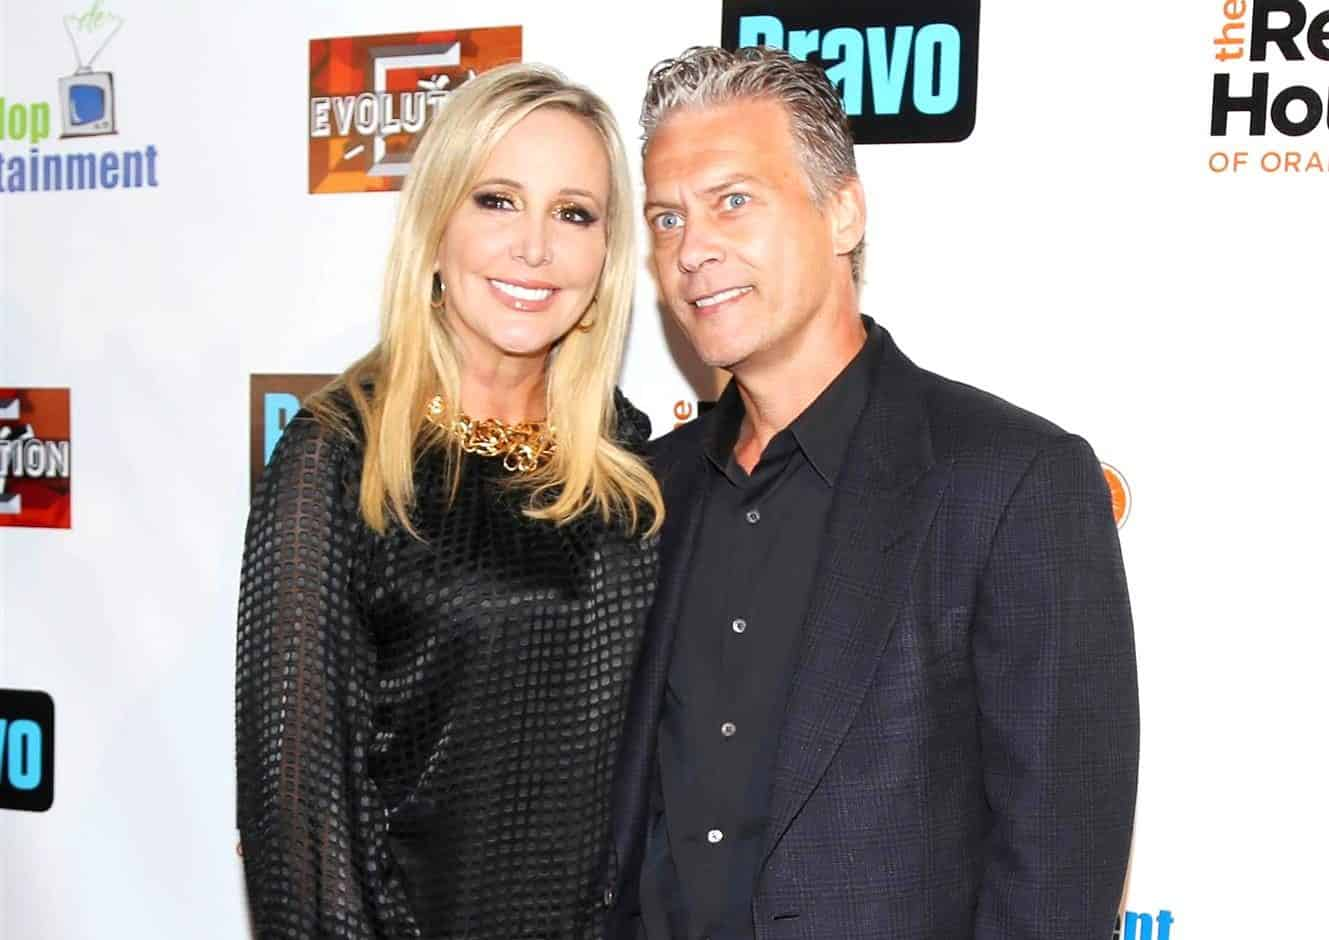 RHOC Star Shannon Beador Finalizes Divorce from Ex-Husband David Beador After They Reach a 'Settlement,' See Shannon's Reaction